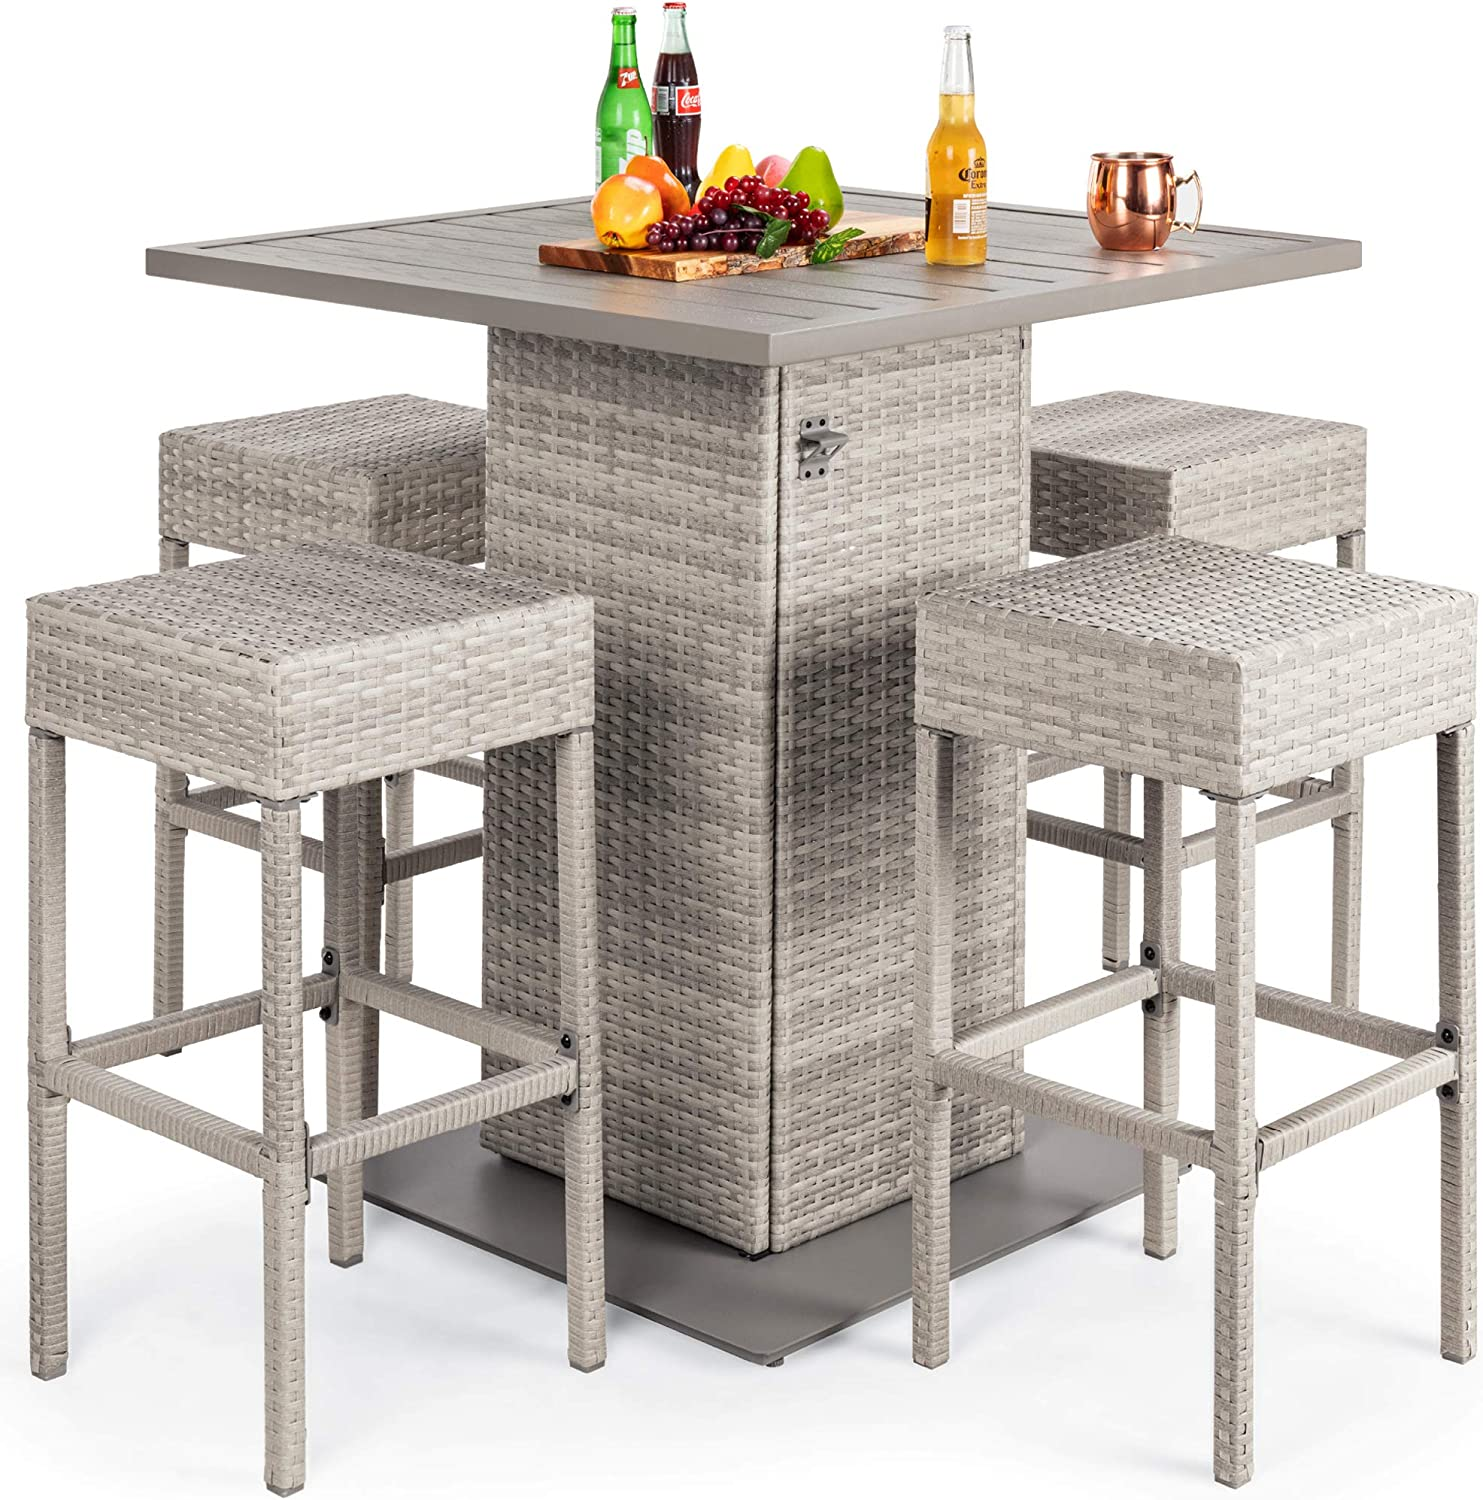 Best Choice Products 5-Piece Outdoor Wicker Bar Table Set for Patio, Poolside, Backyard w/Built-in Bottle Opener, Hidden Storage Shelf, Metal Tabletop, 4 Stools - Gray